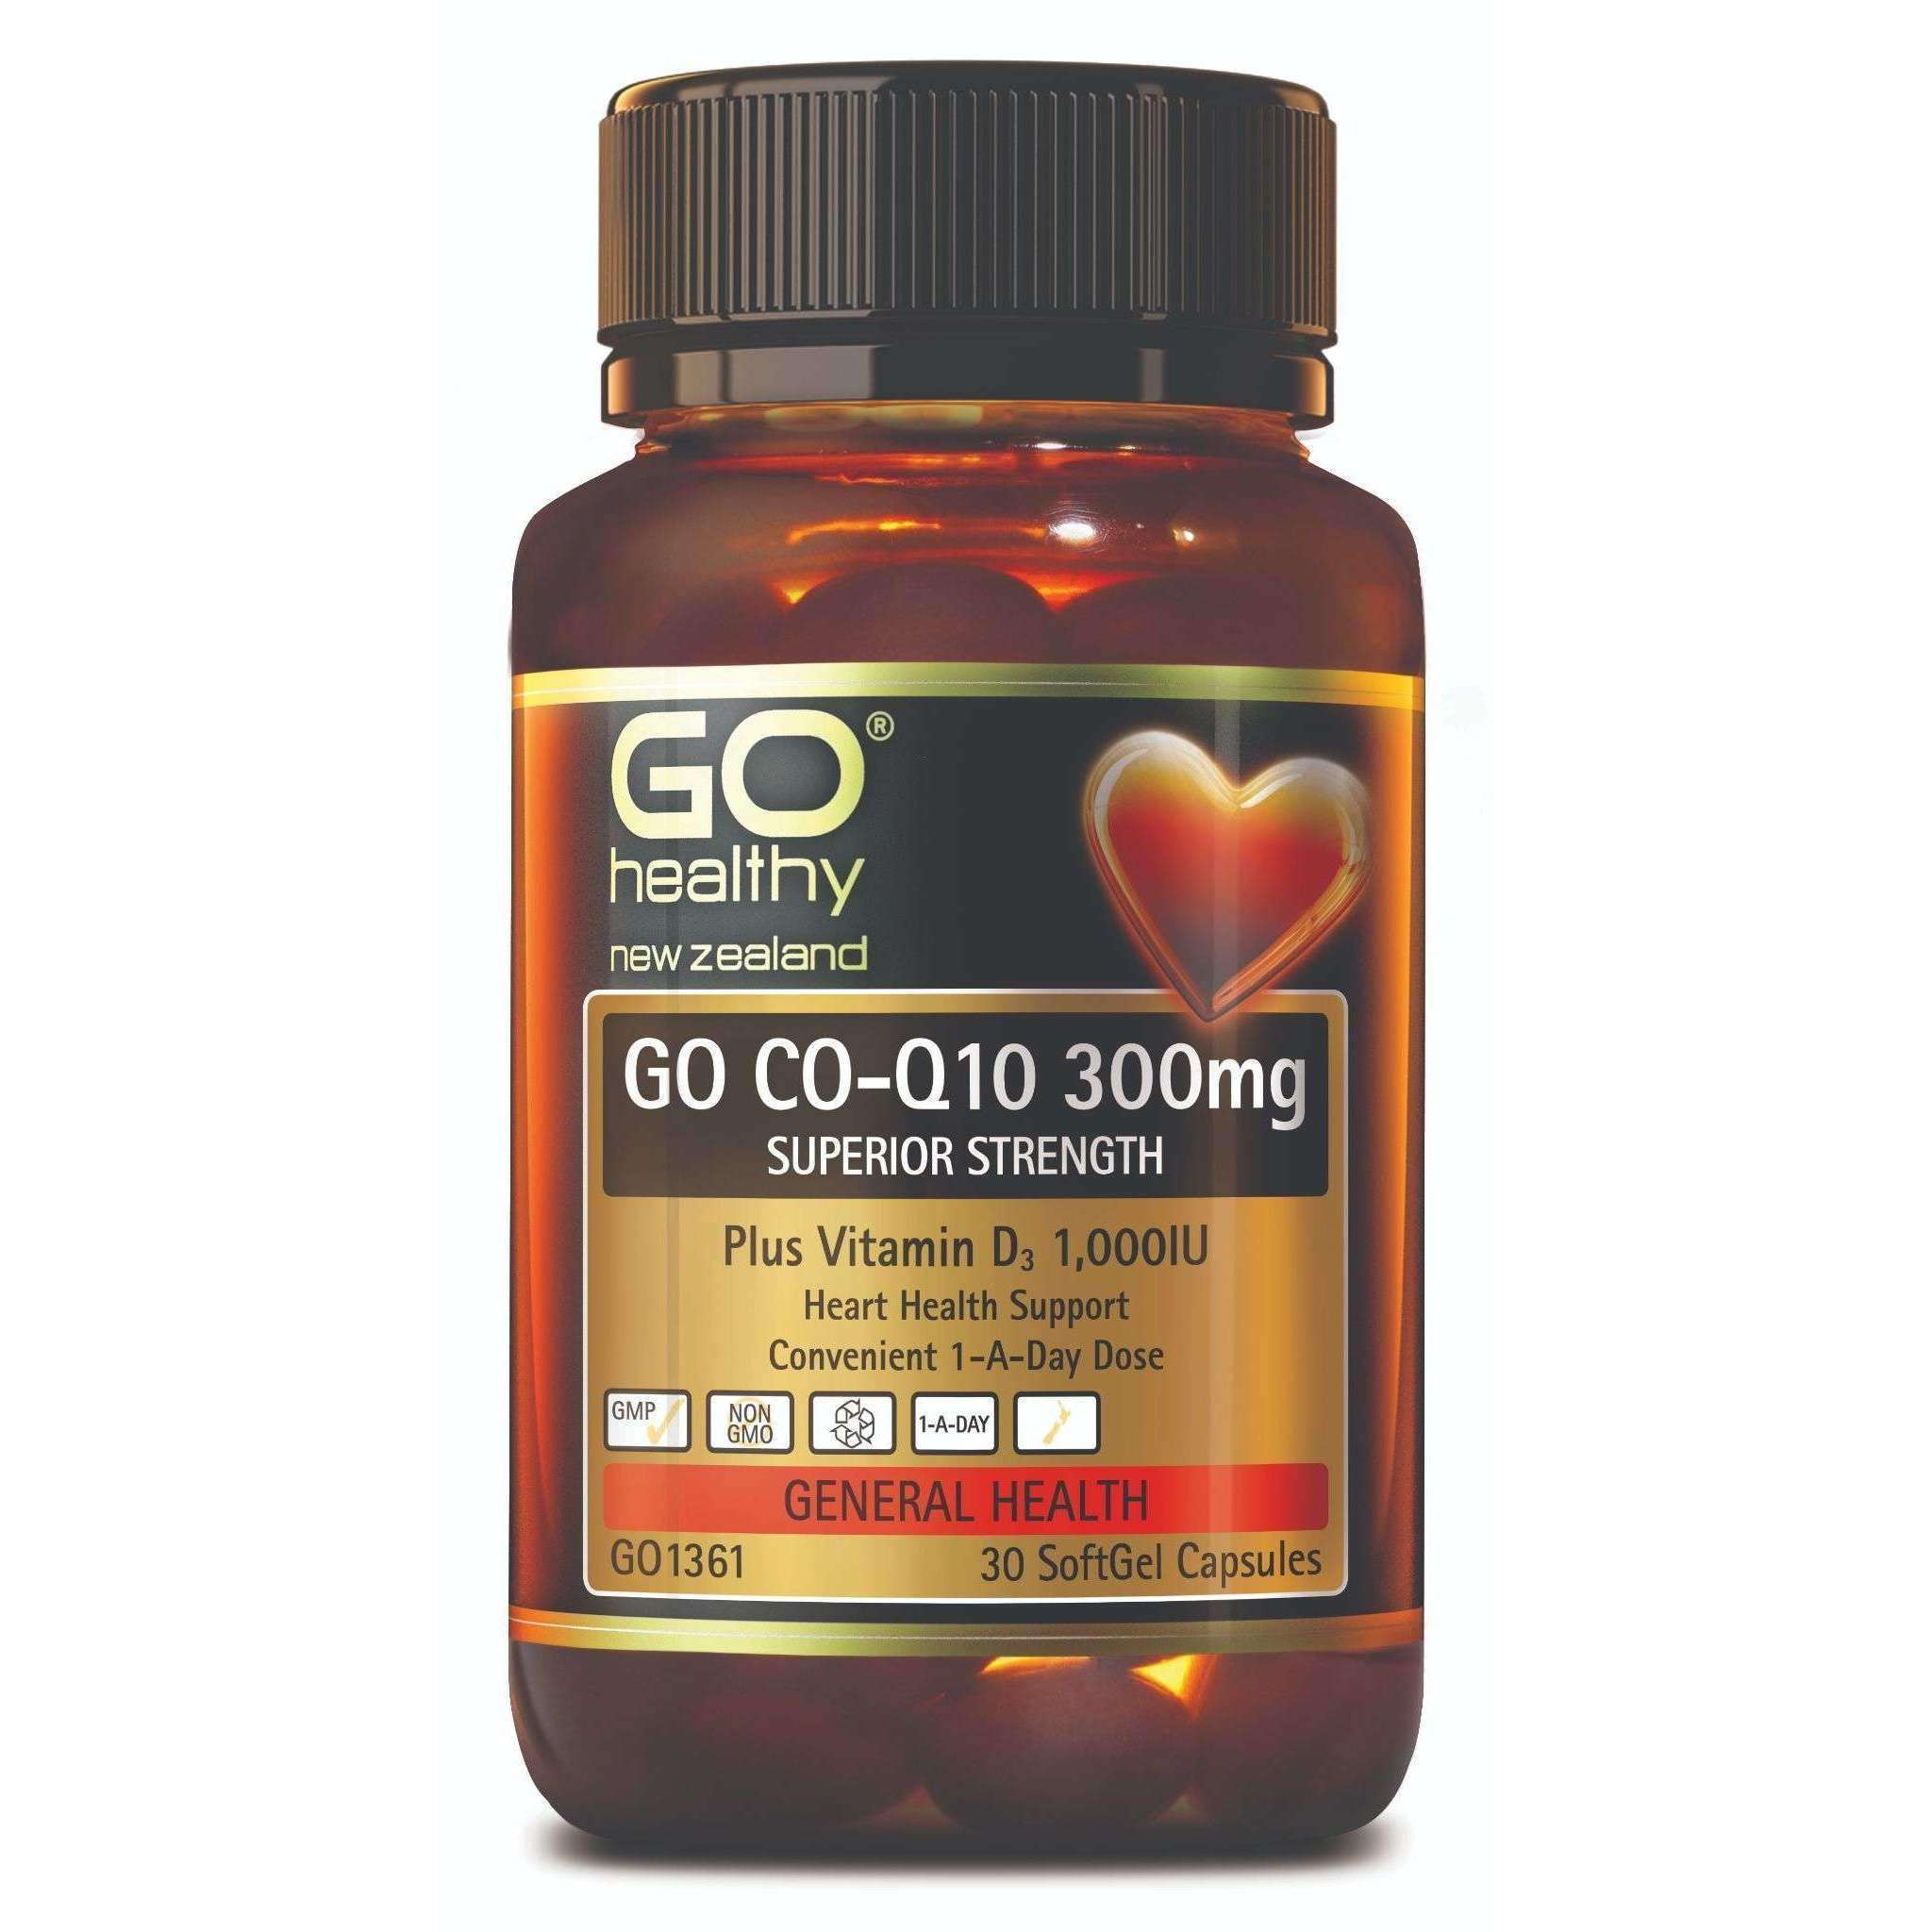 Go Healthy Go Co-Q10 300mg + Vitamin D3